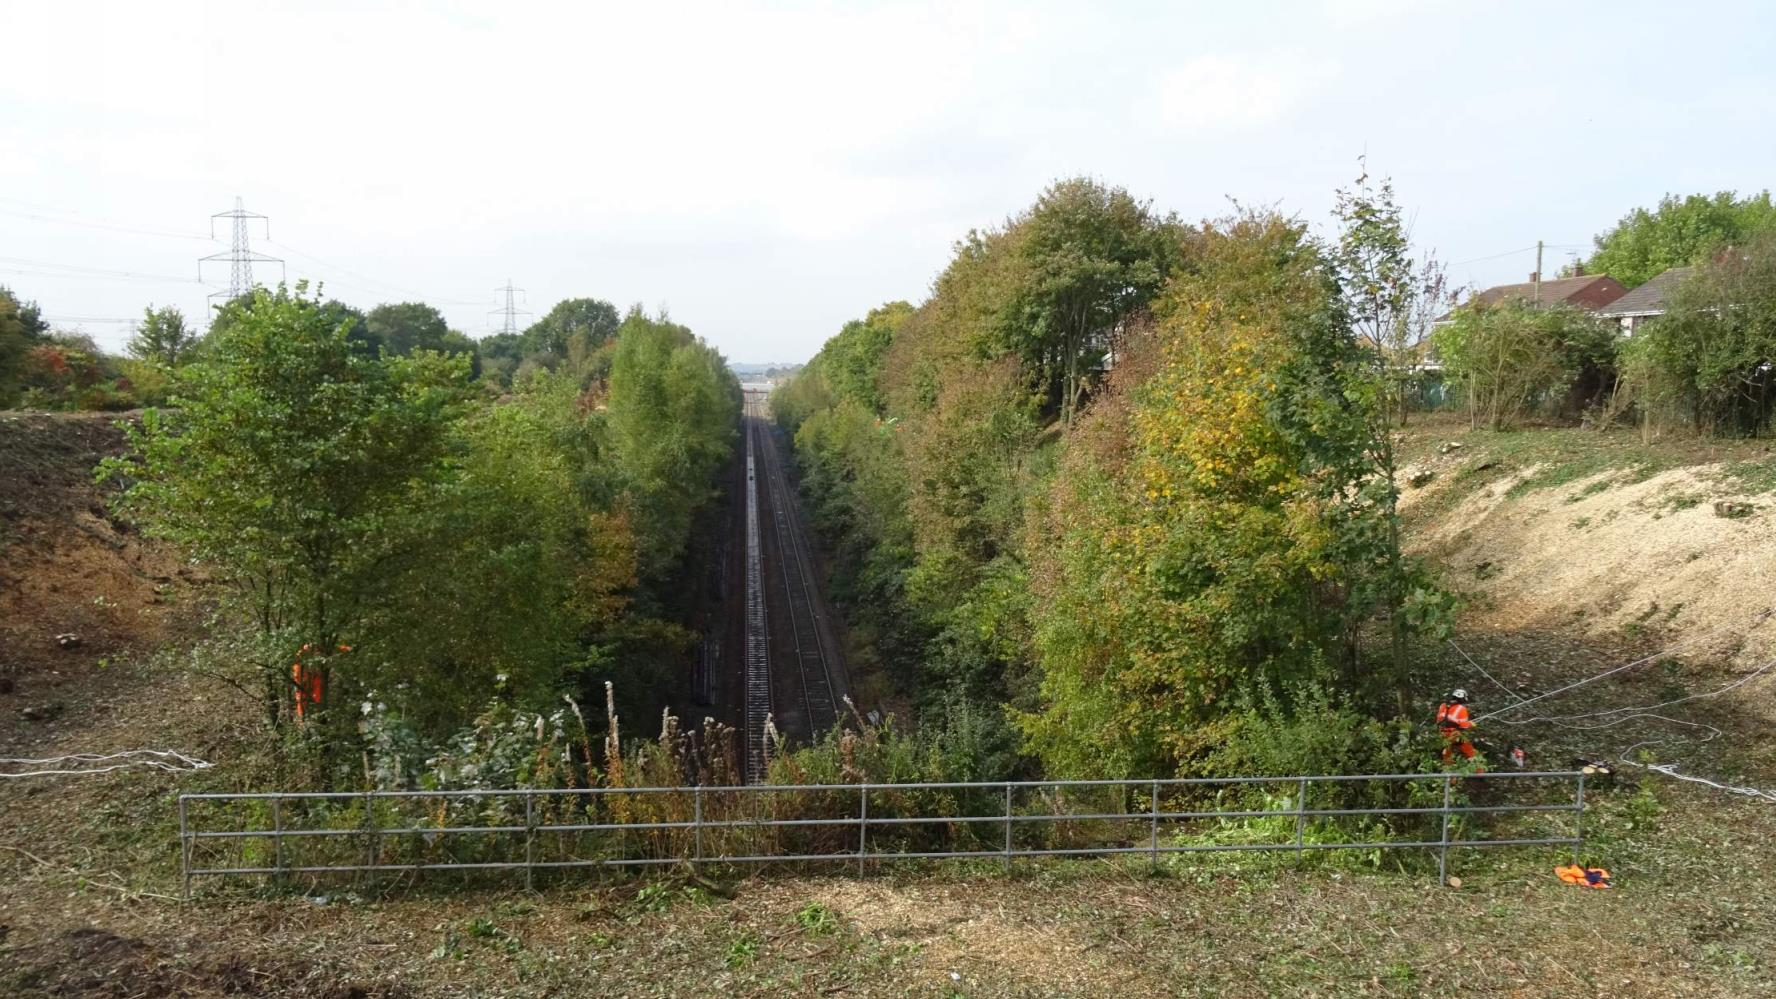 Severn Tunnel Vegetation Clearance - Before